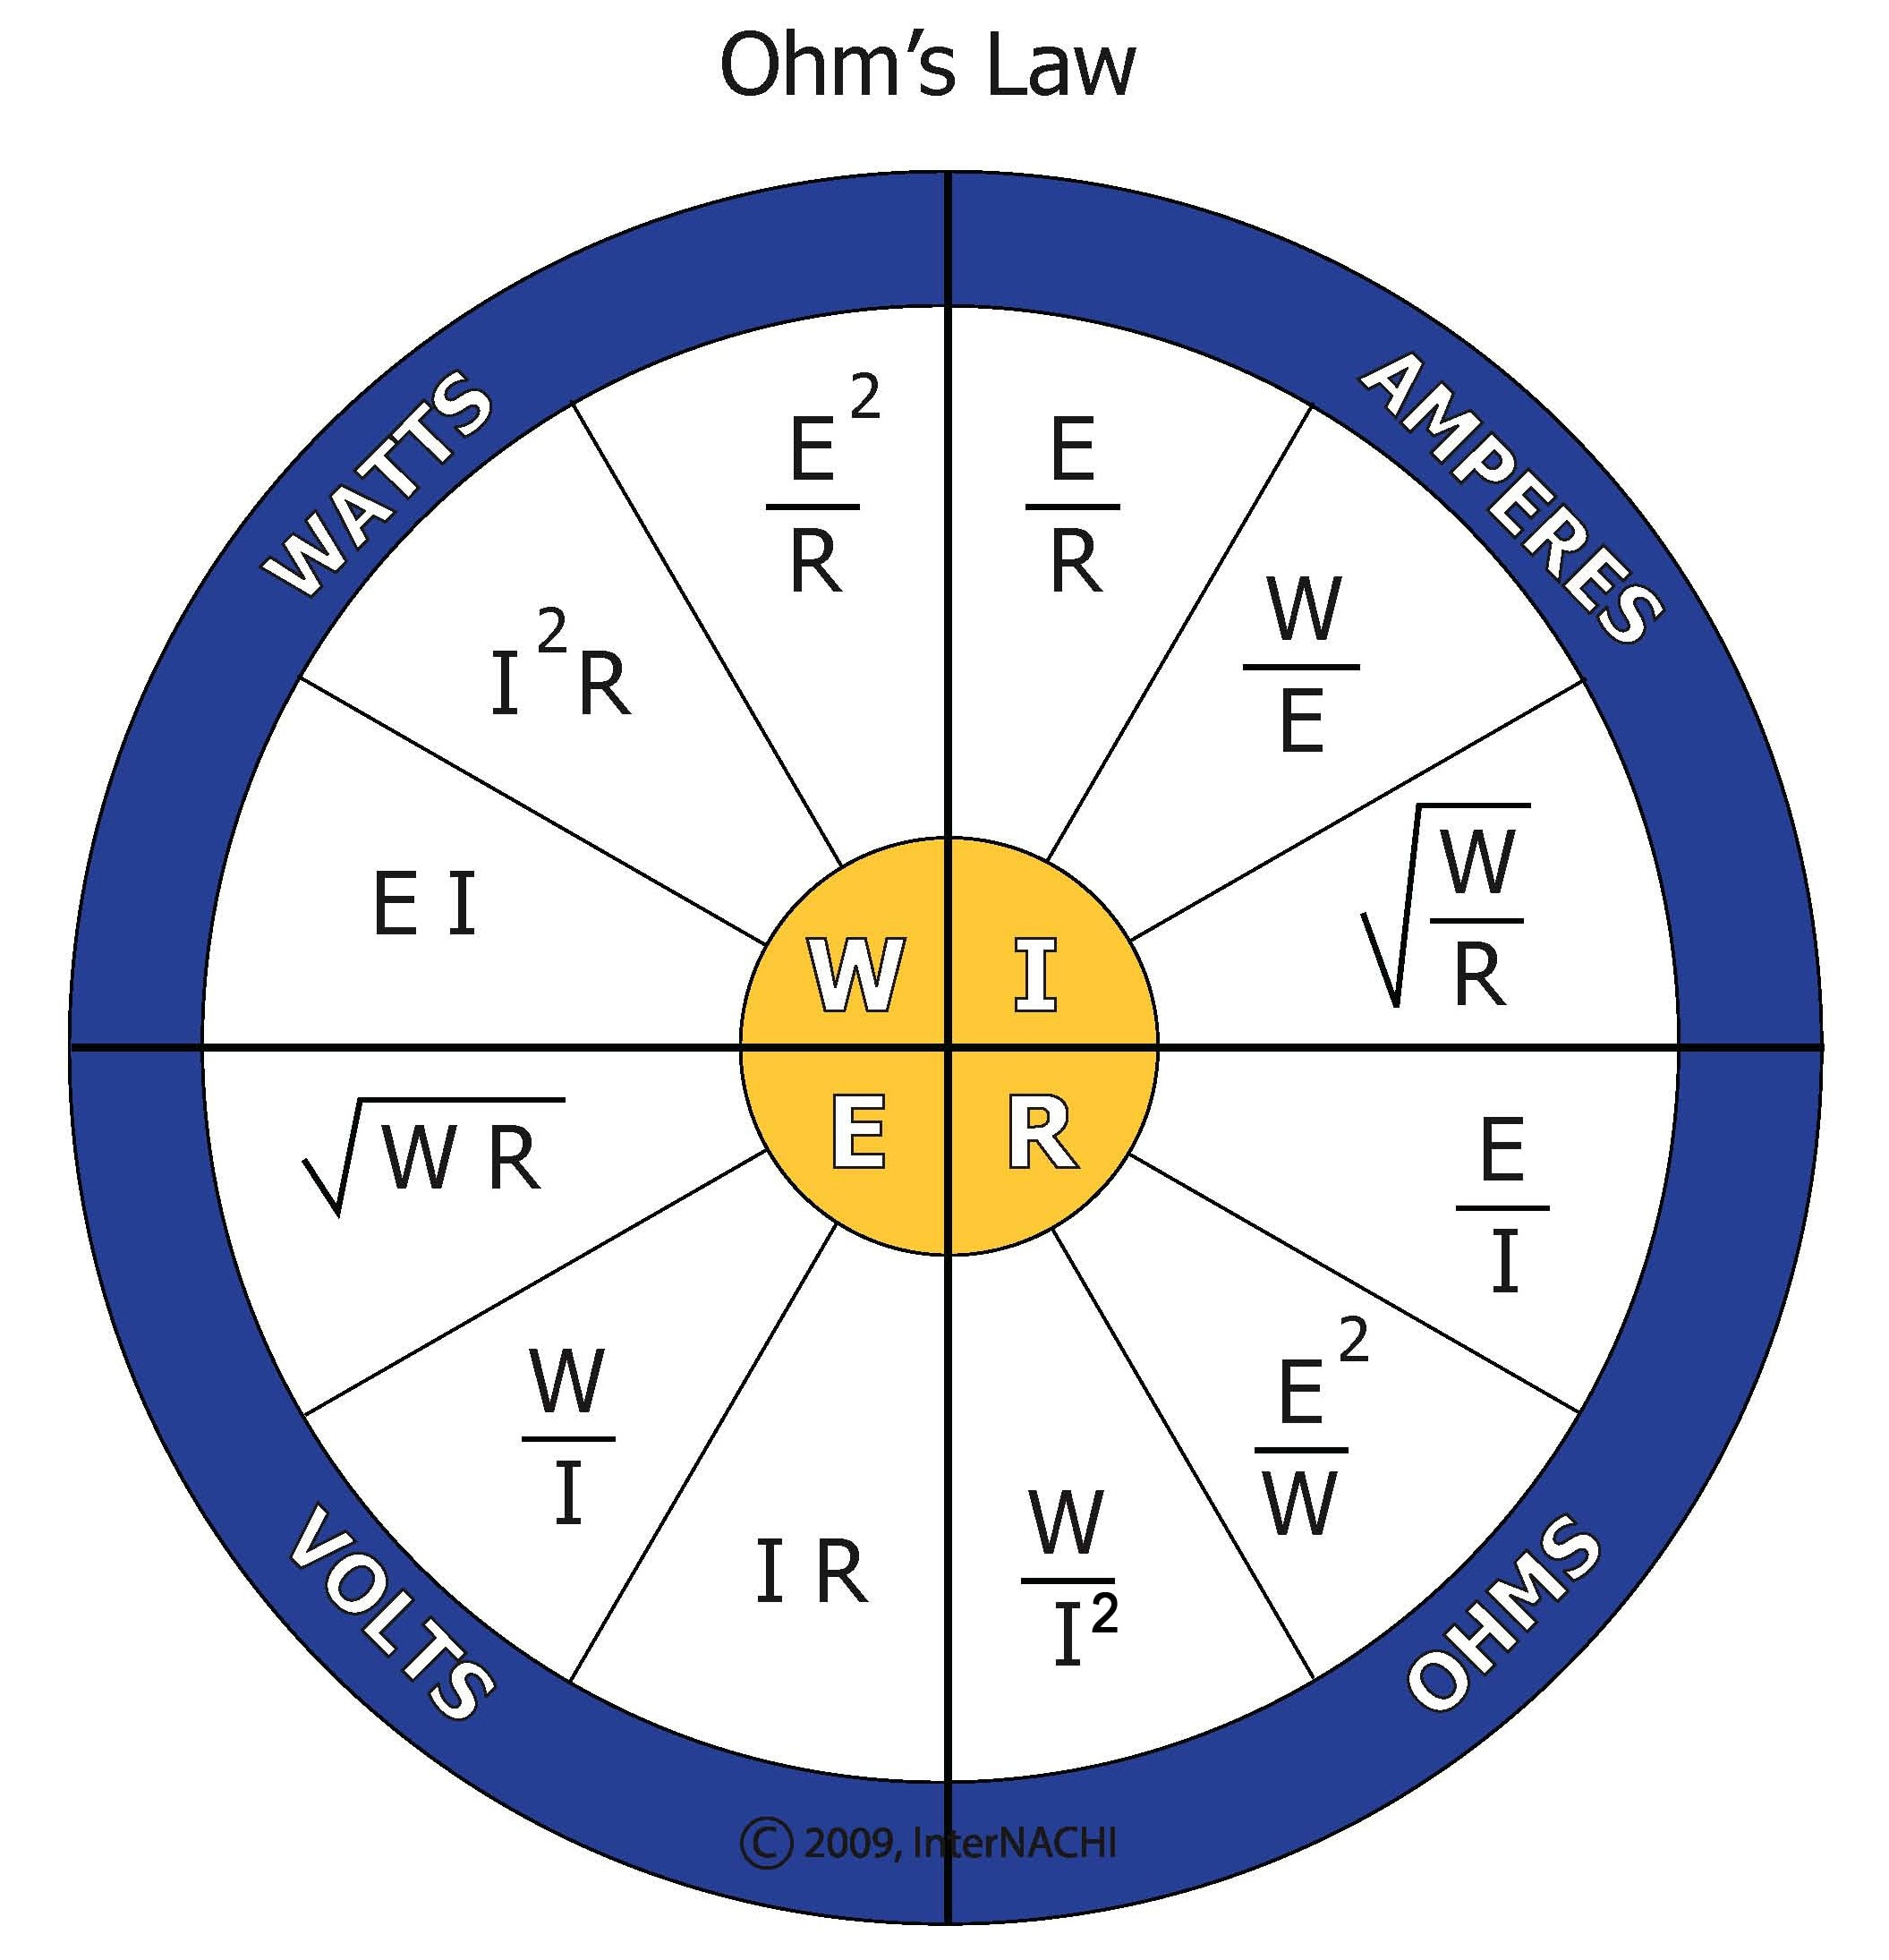 ohms law essay Free essay: physics practical report: experiment: ohmic resistance and ohm's  law patrick doan mr sadowsky 11 phys 71 12/9/08 table of.